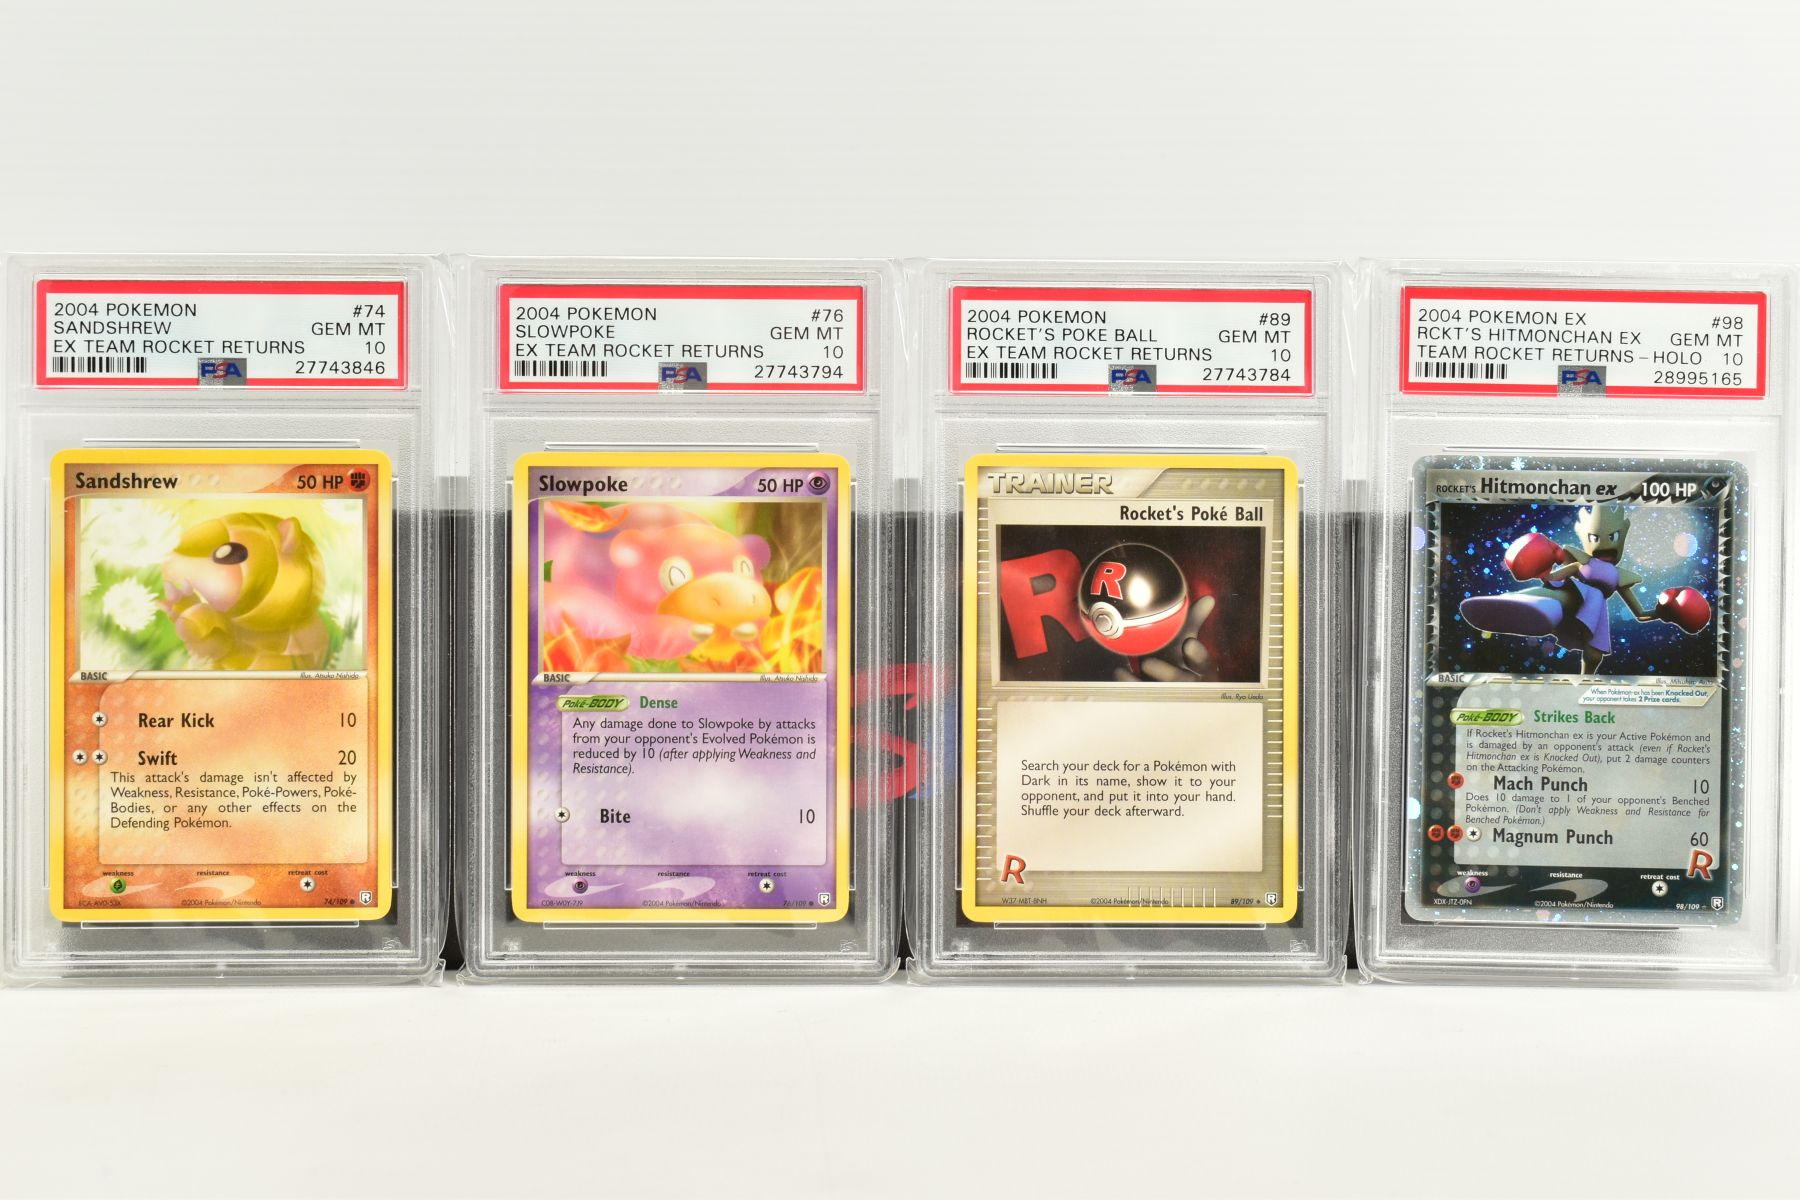 A QUANTITY OF PSA GRADED POKEMON EX TEAM ROCKET RETURNS AND EX RUBY & SAPPHIRE SET CARDS, all are - Image 9 of 15